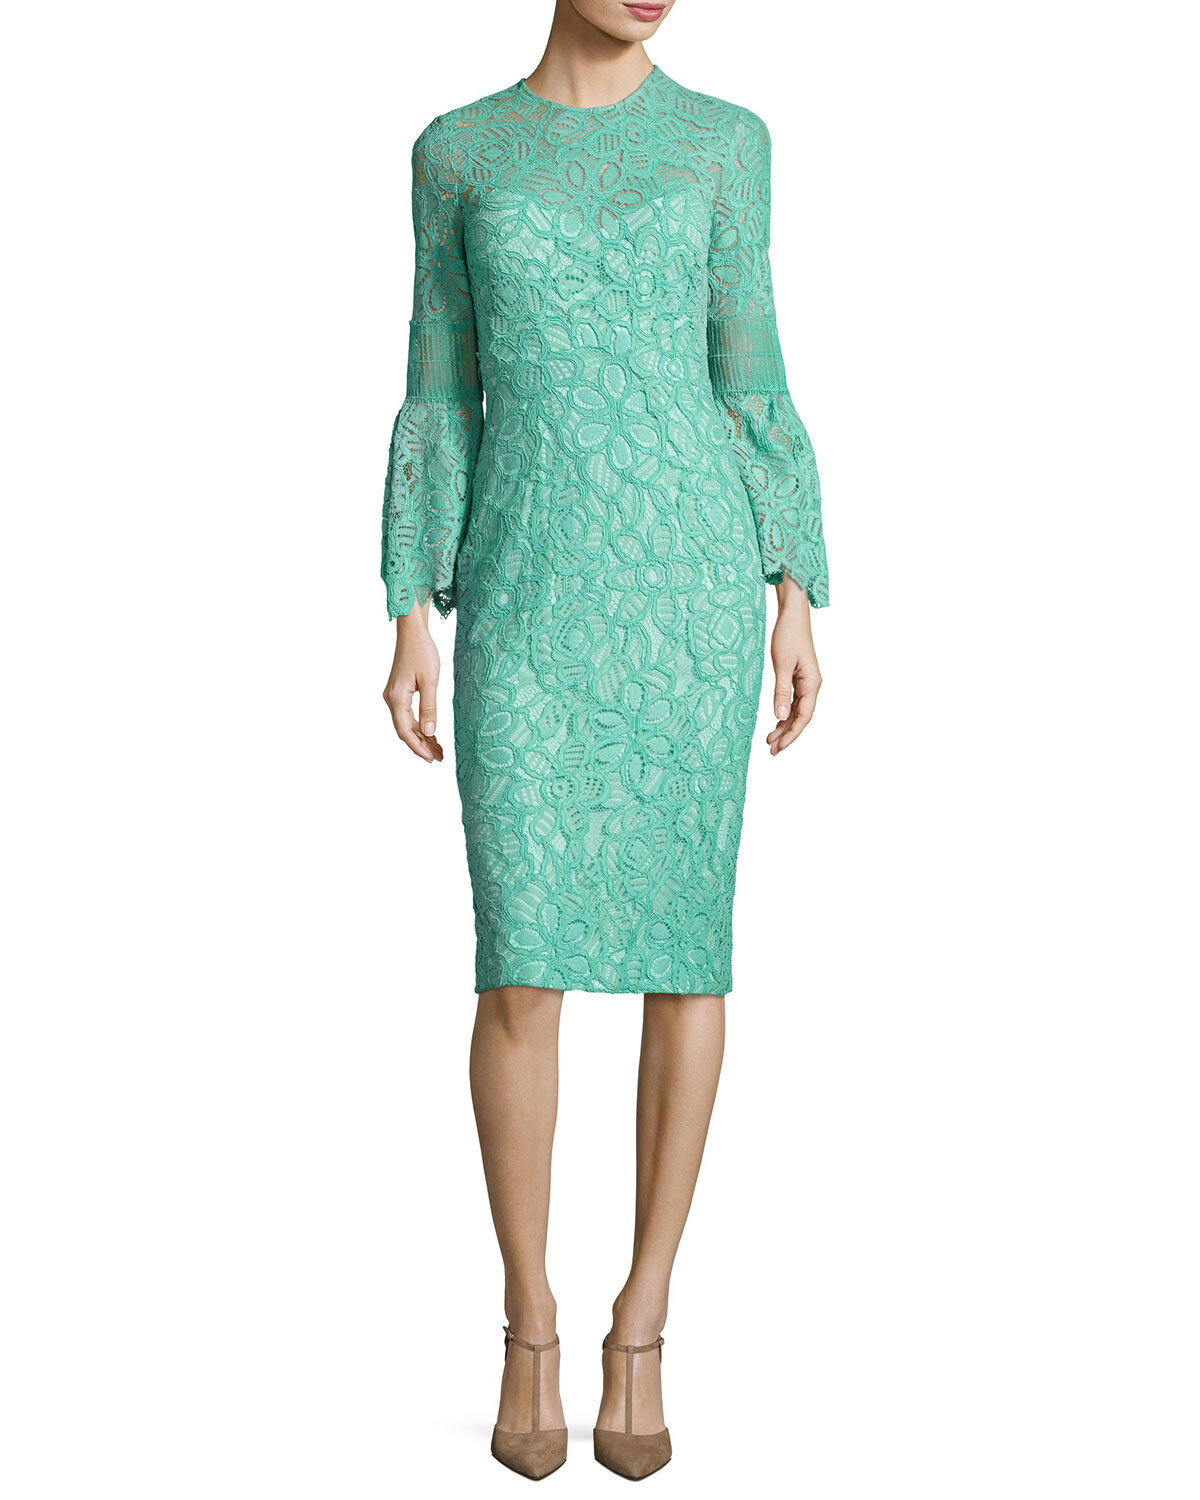 NEW LELA pink Floral Corded Lace Bell Flounce Sleeve Fitted Dress Mint 10